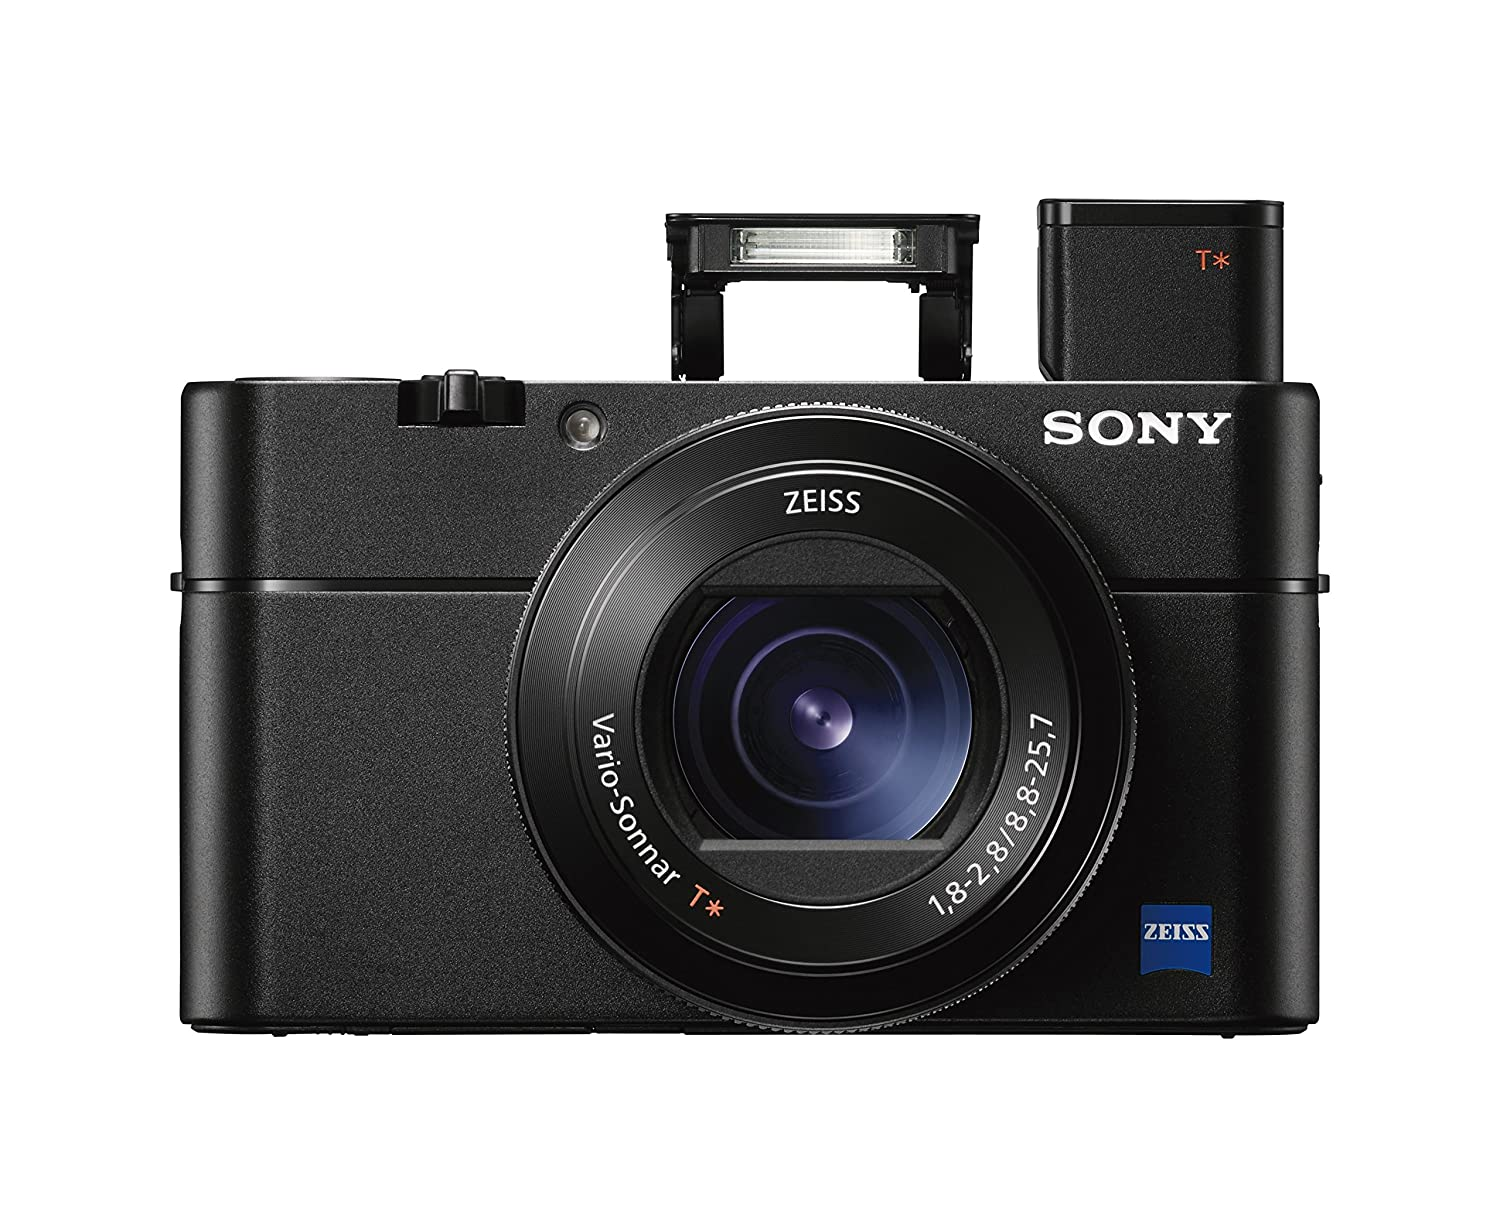 Sony Cyber-shot DSC-RX100 V 20.1 MP Digital Still Camera